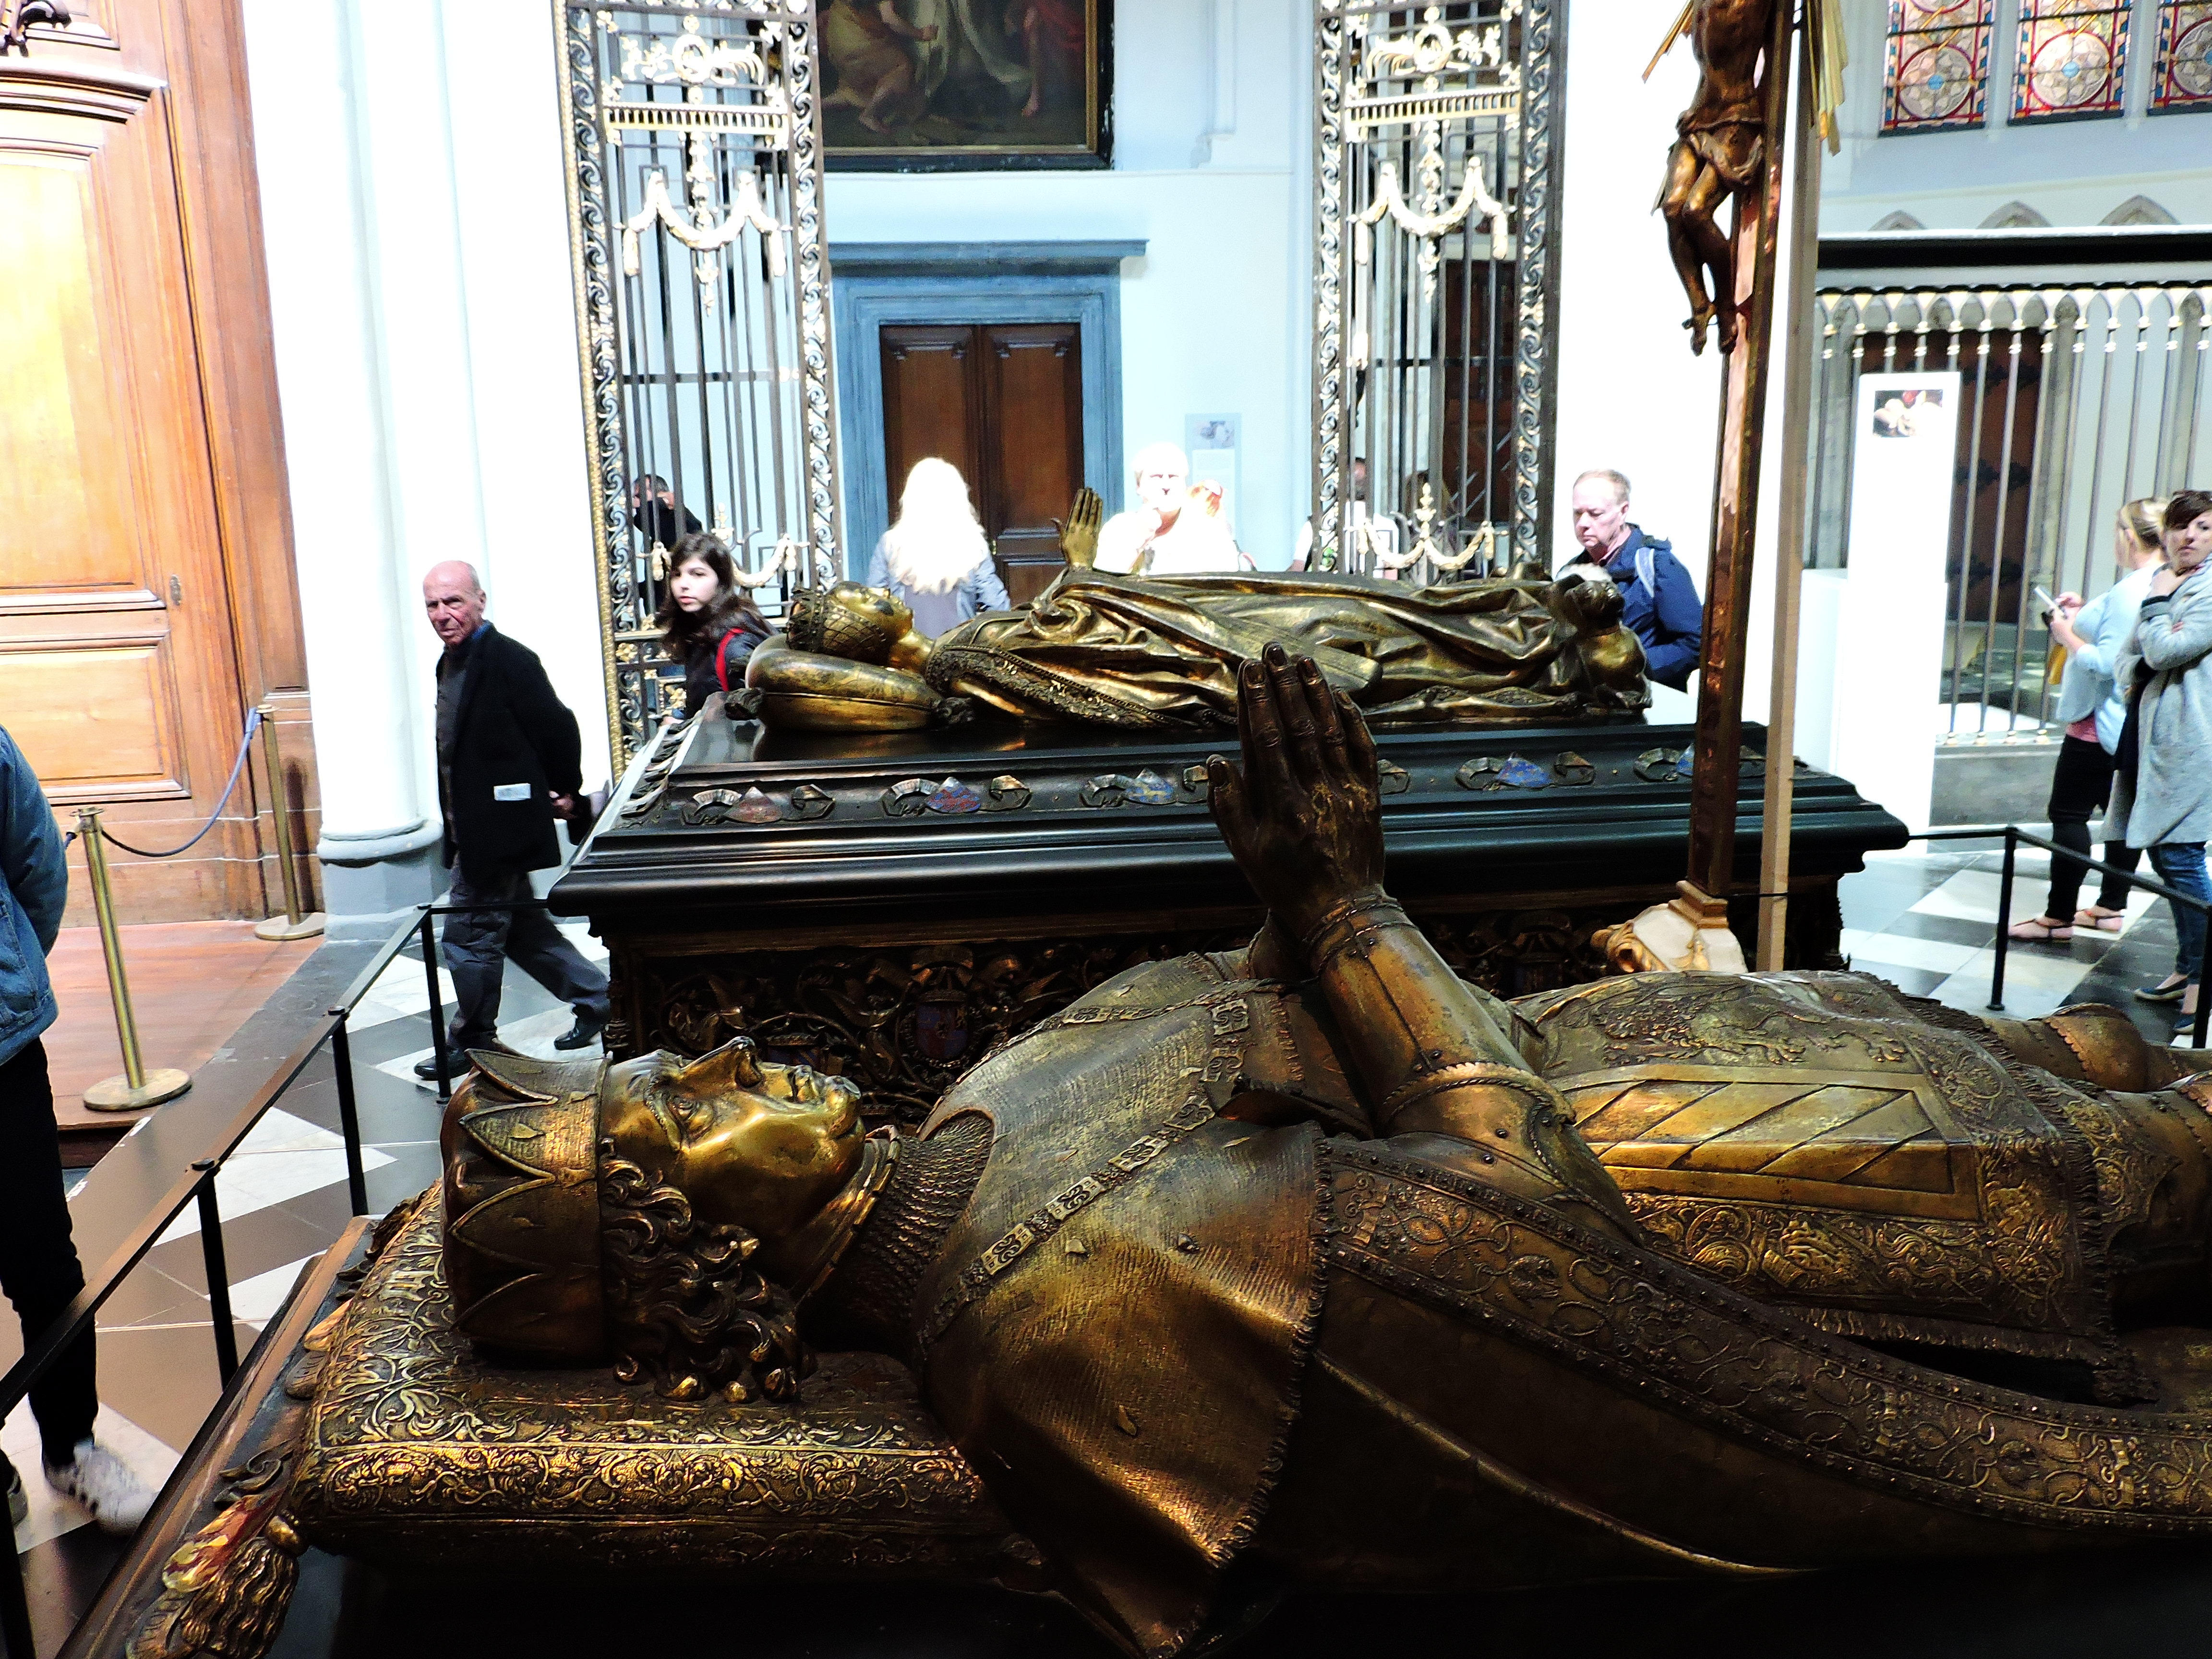 Ceremonial tombs of Charles the Bold & Mary of Burgundy, Church of Our Lady (Onze-Lieve-Vrouwekerk), Bruges